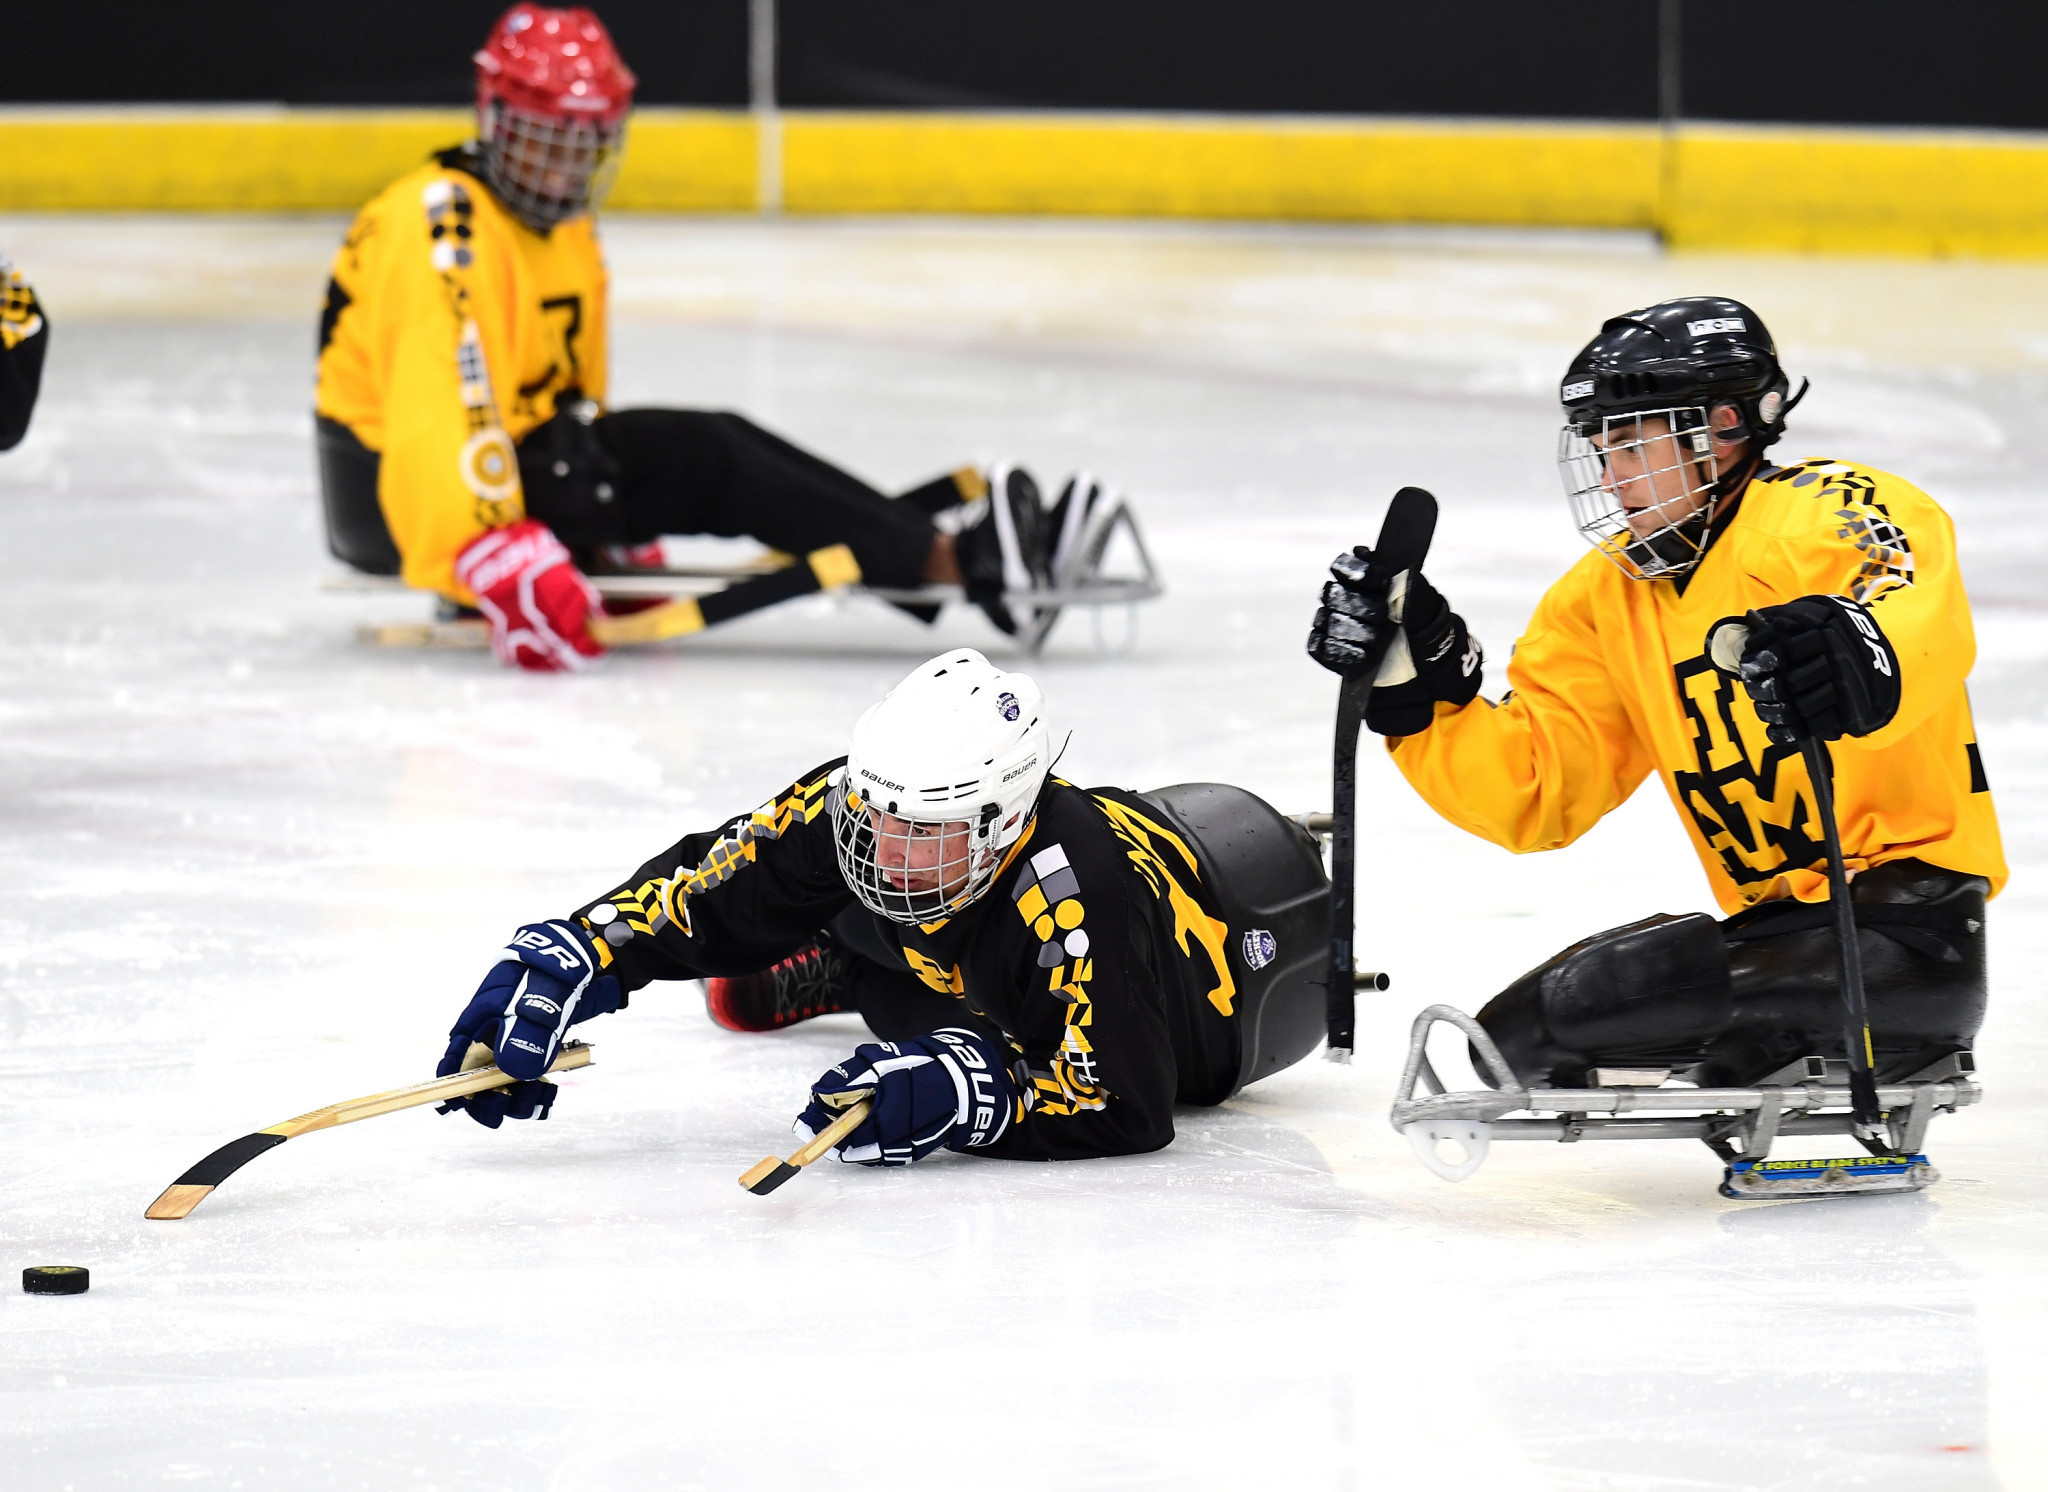 World Para Ice Hockey seeking host for Beijing 2022 qualifying tournament